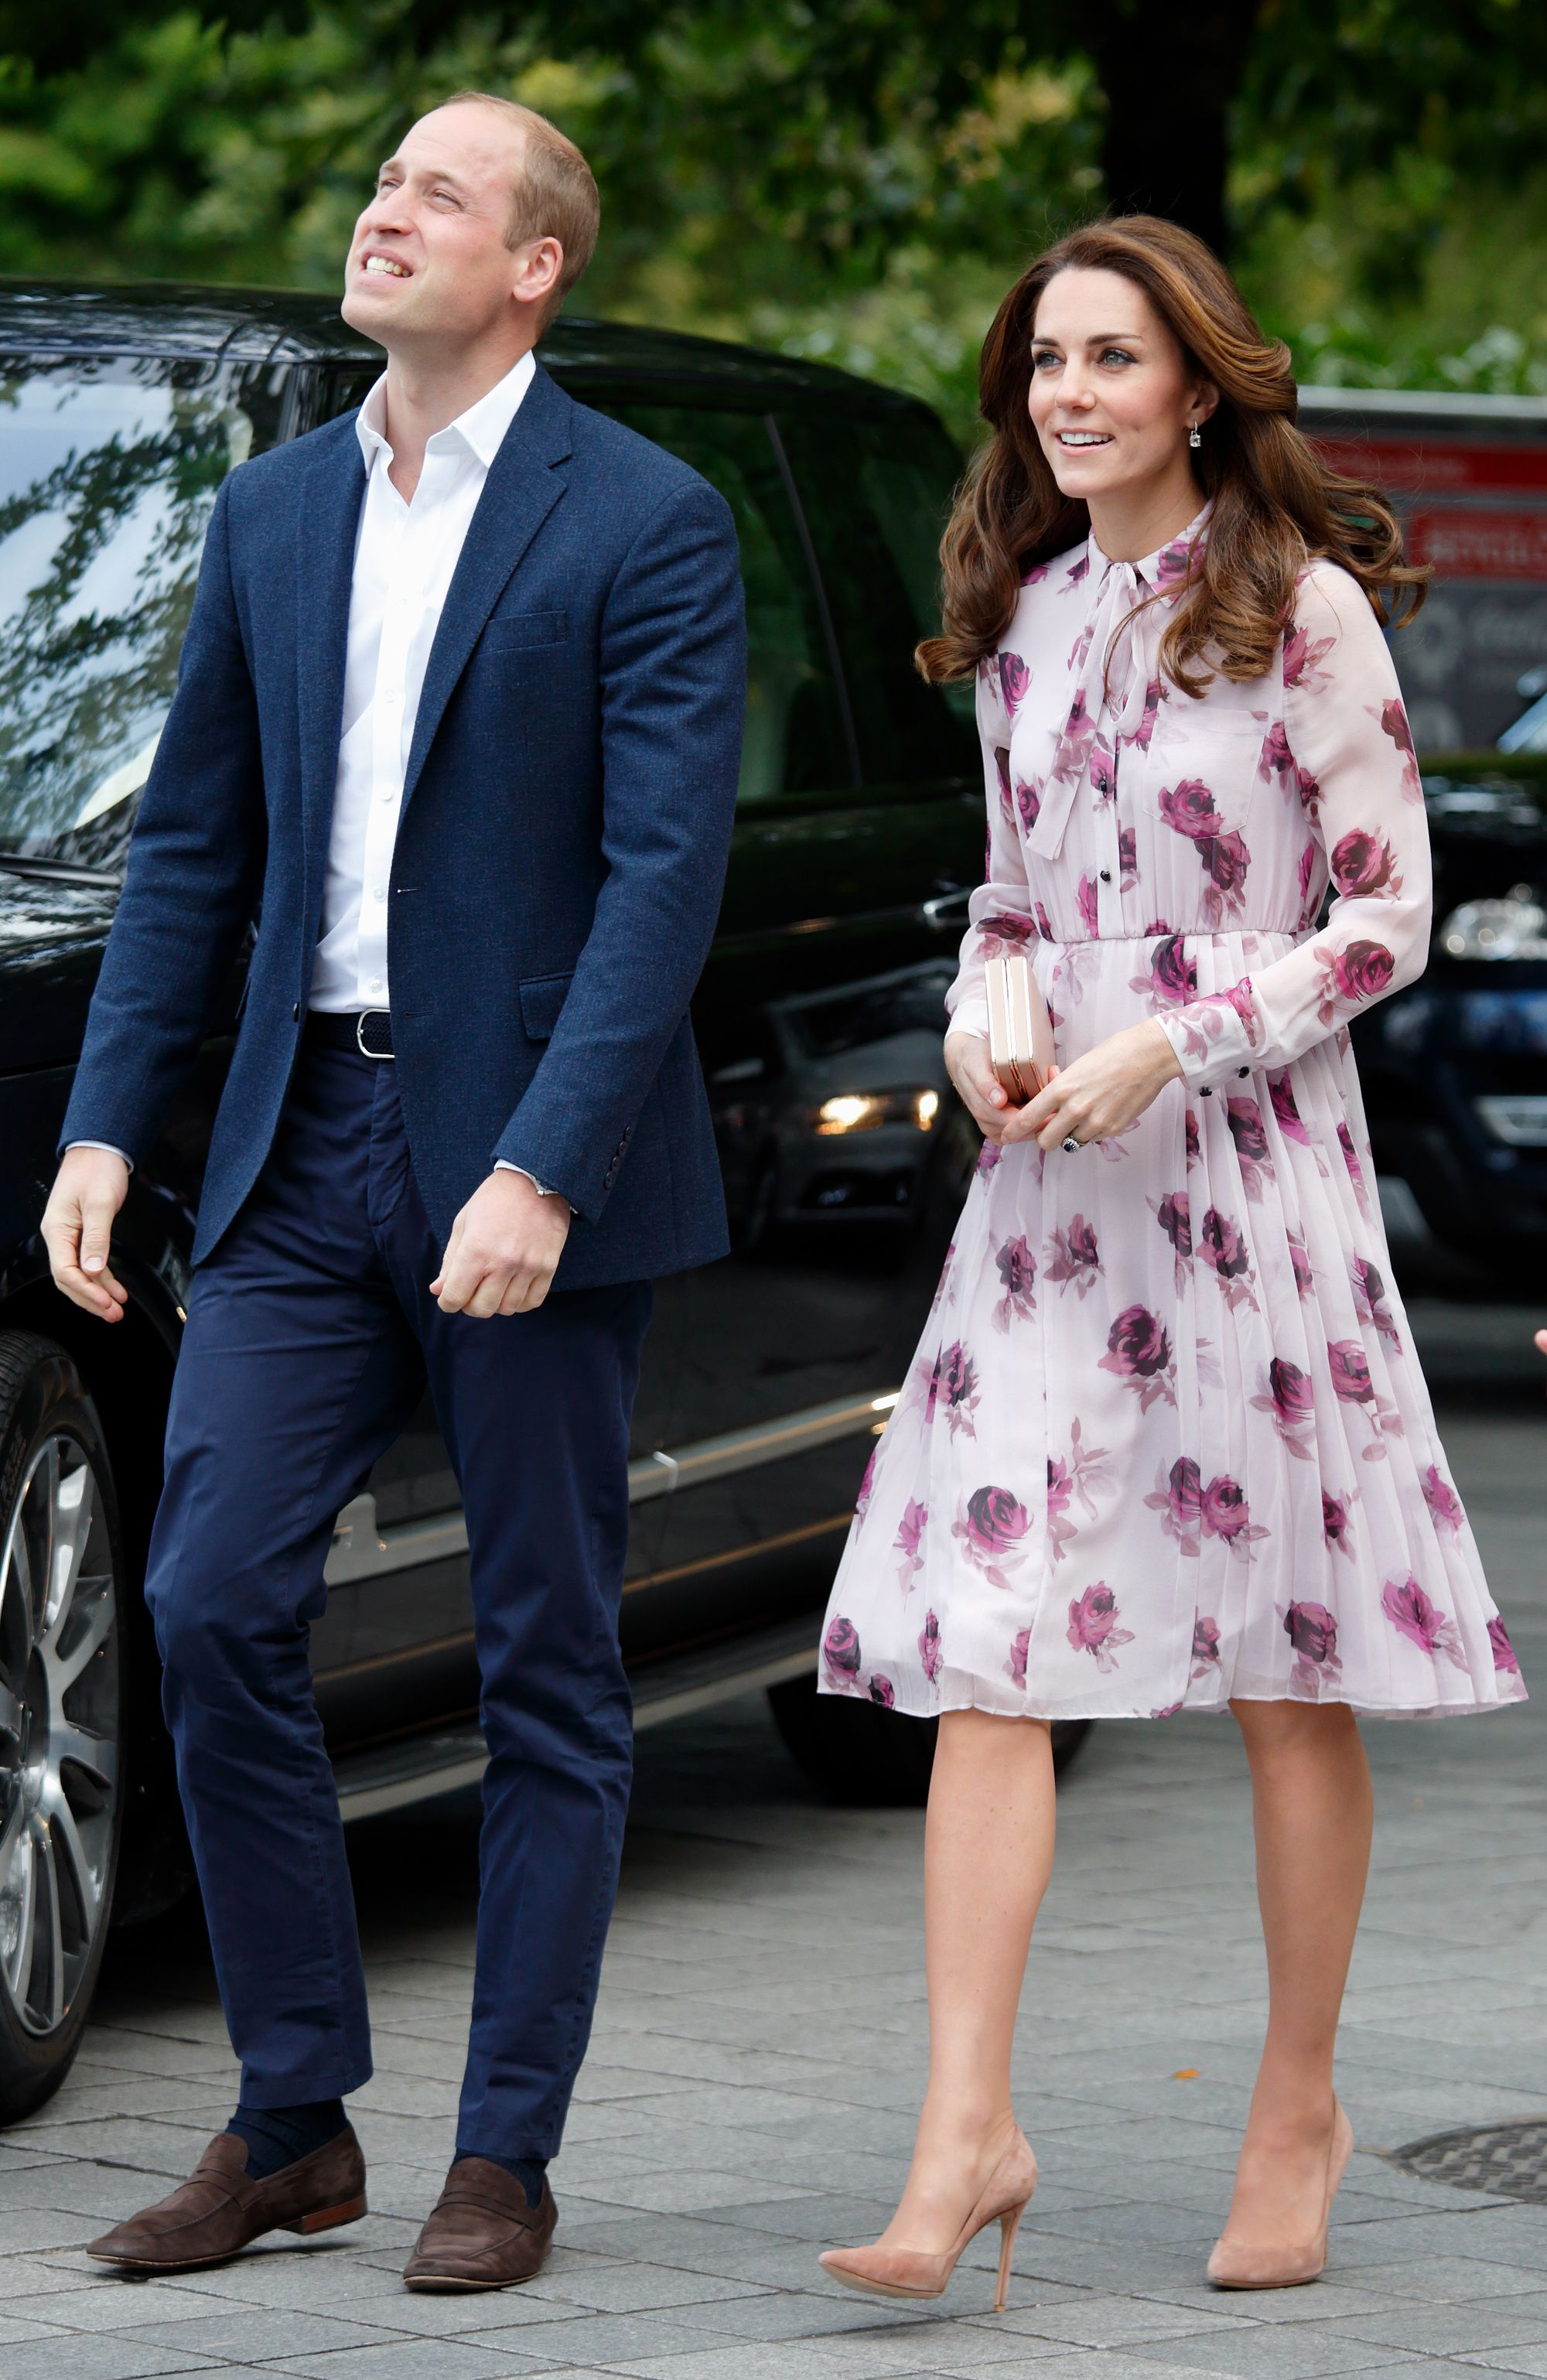 """Shop Now Gianvito Rossi """"Gianvito 105"""" Pumps in Taupe Suede, $675 The Duchess also owns the same pair of Gianvito Rossi pumps in taupe, which she wore to the World Mental Health Day celebration in October 2016."""